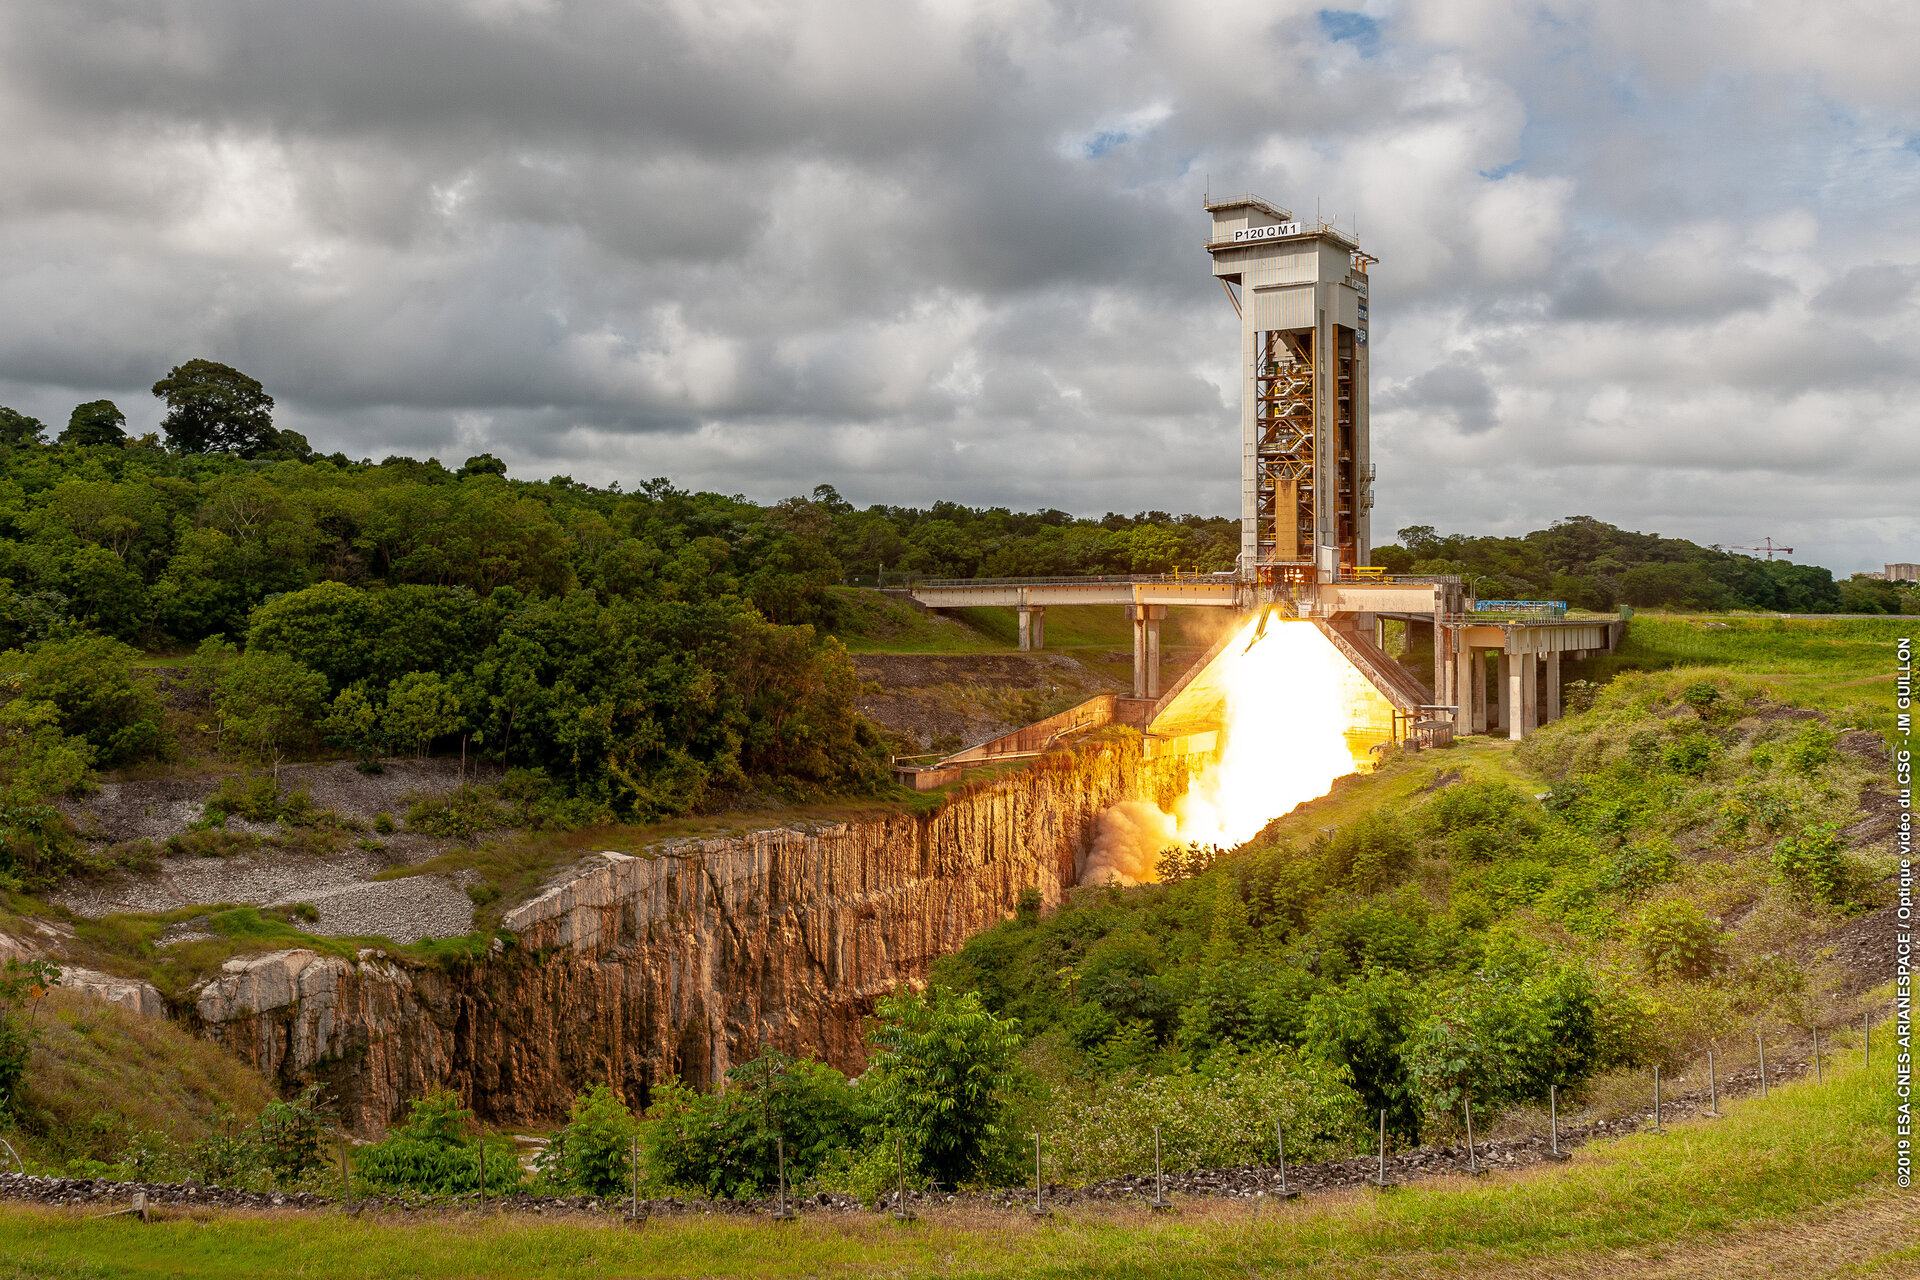 P120C booster testing at Europe's Spaceport